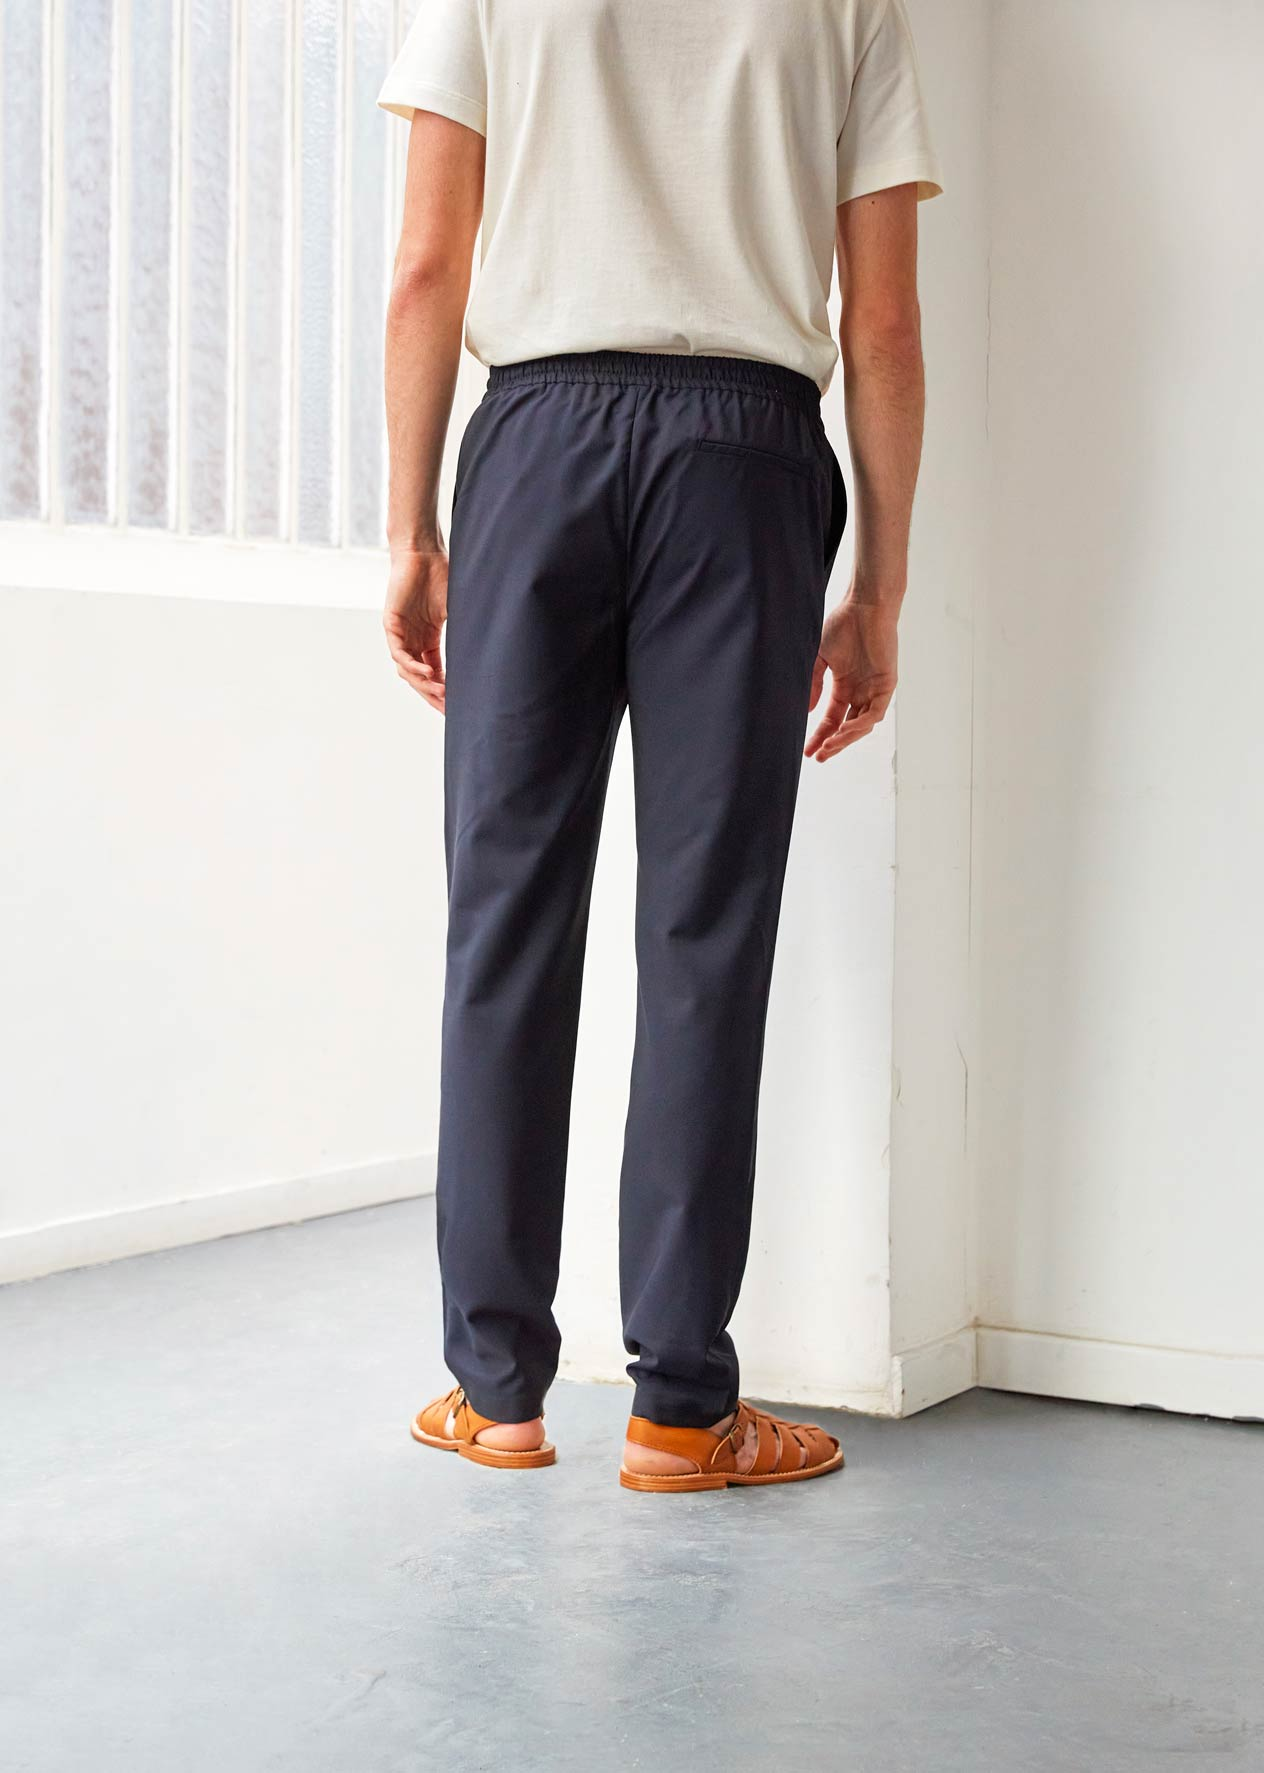 Rexaled trousers - Tropical wool - Navy - De Bonne Facture